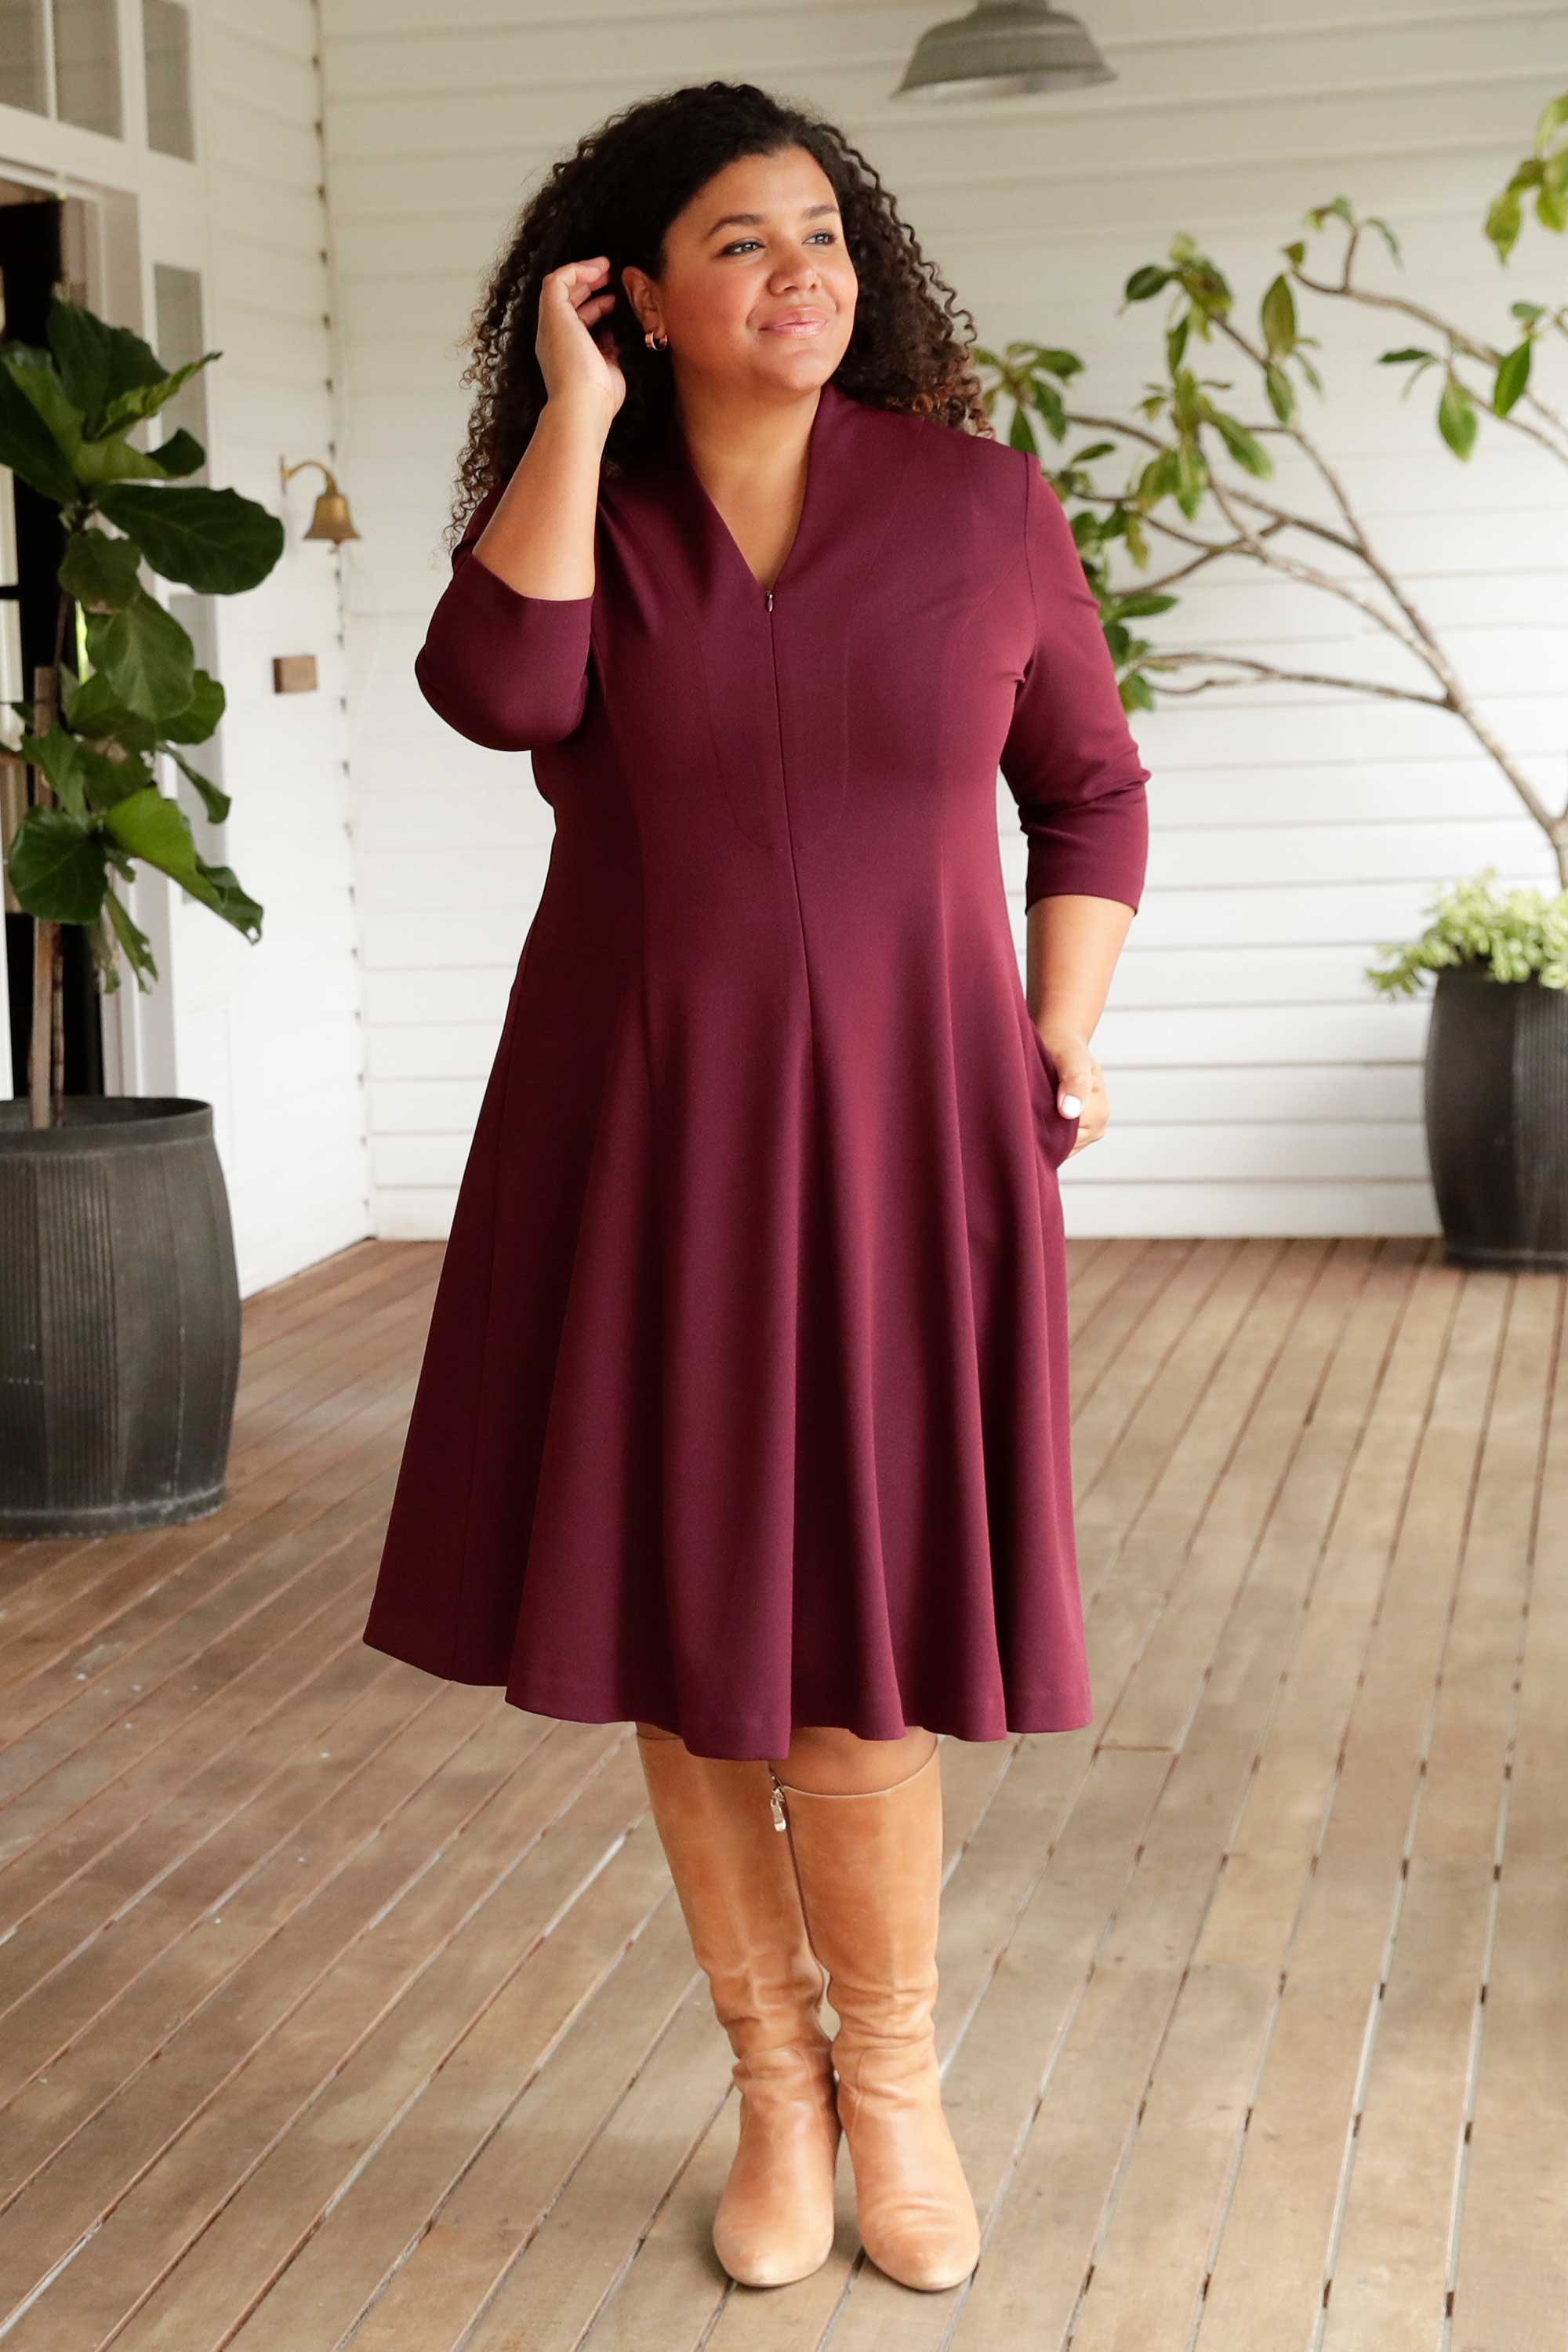 Leina & Fleur have Designed the Clara Dress in Shiraz for the Professional Woman. Comfortable and Stylish Dress for Work. Leina & Fleur are Proudly Australian Made and Carry Sizes 8 to 24.